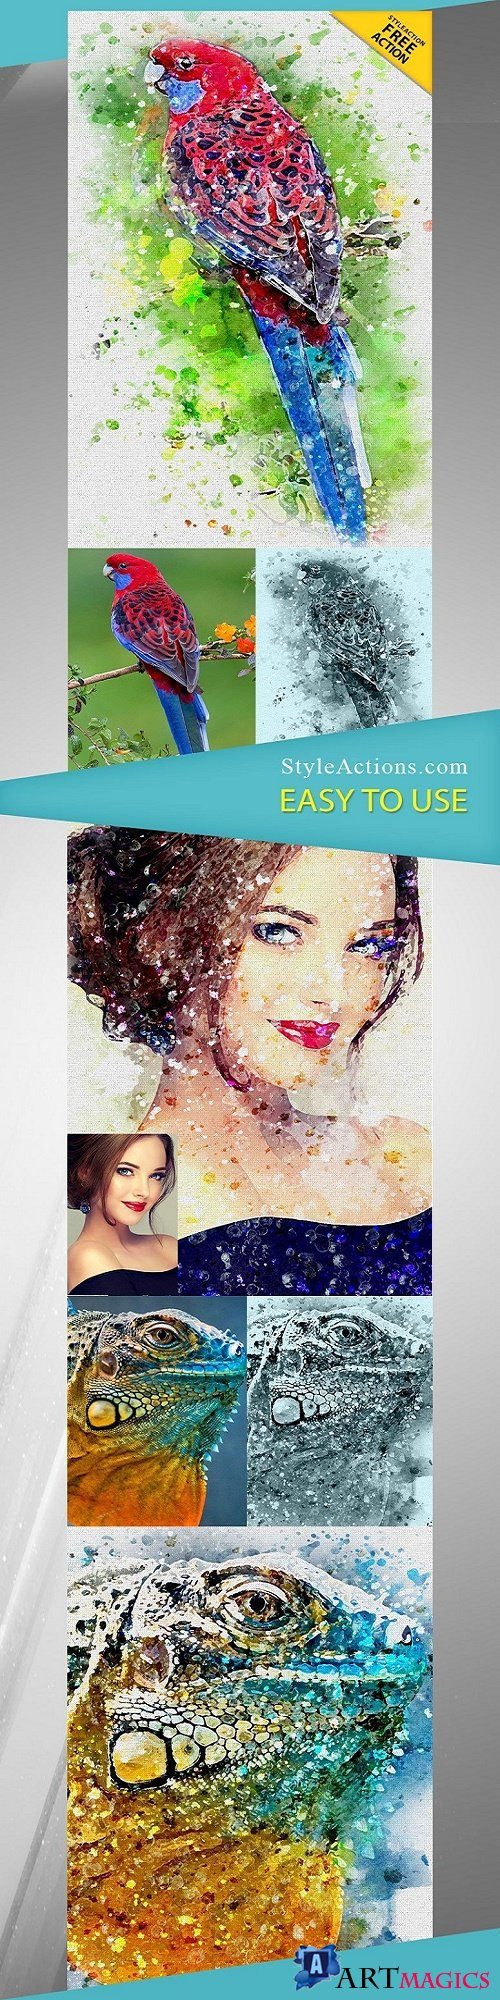 StyleActions - Aquarelle Photoshop Action